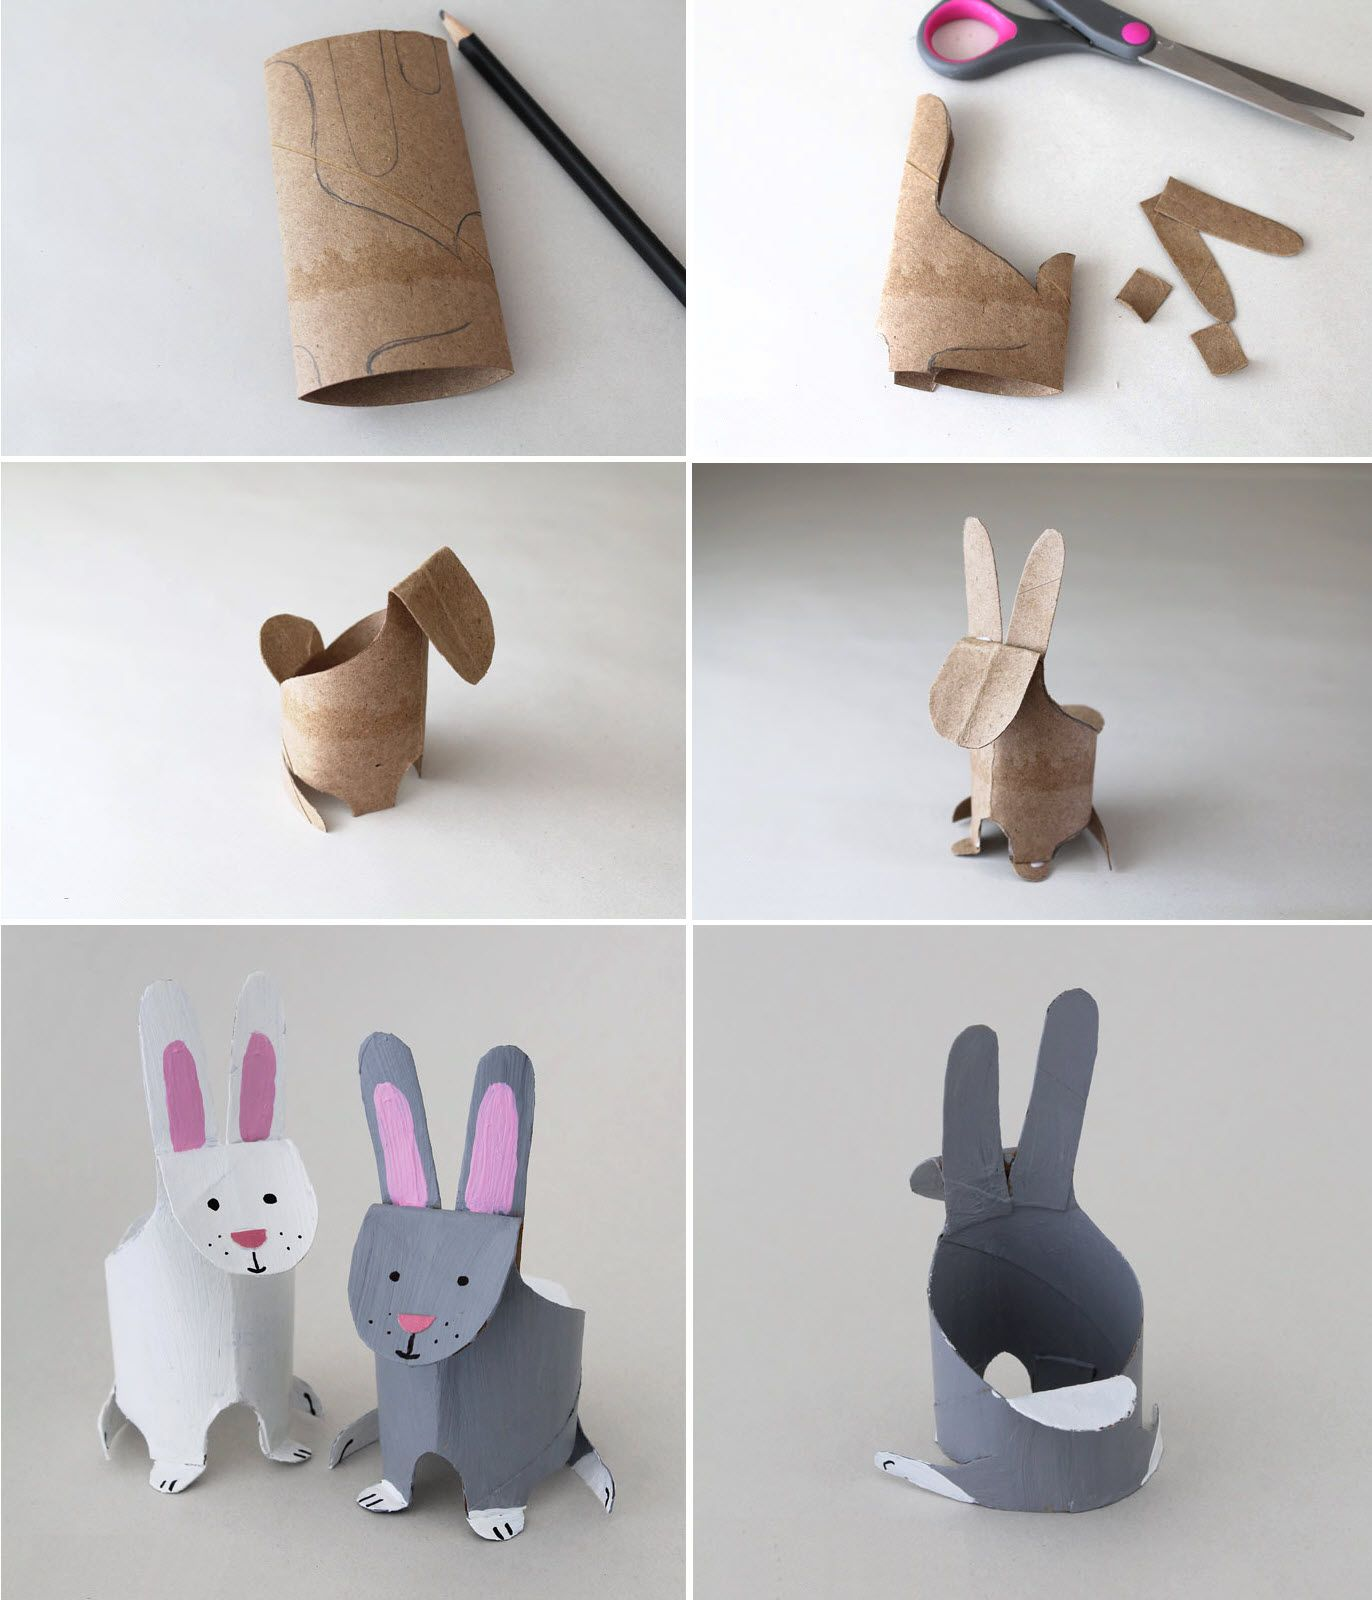 fabrication lapin en carton activt s avec les enfants pinterest carton lapin et p ques. Black Bedroom Furniture Sets. Home Design Ideas